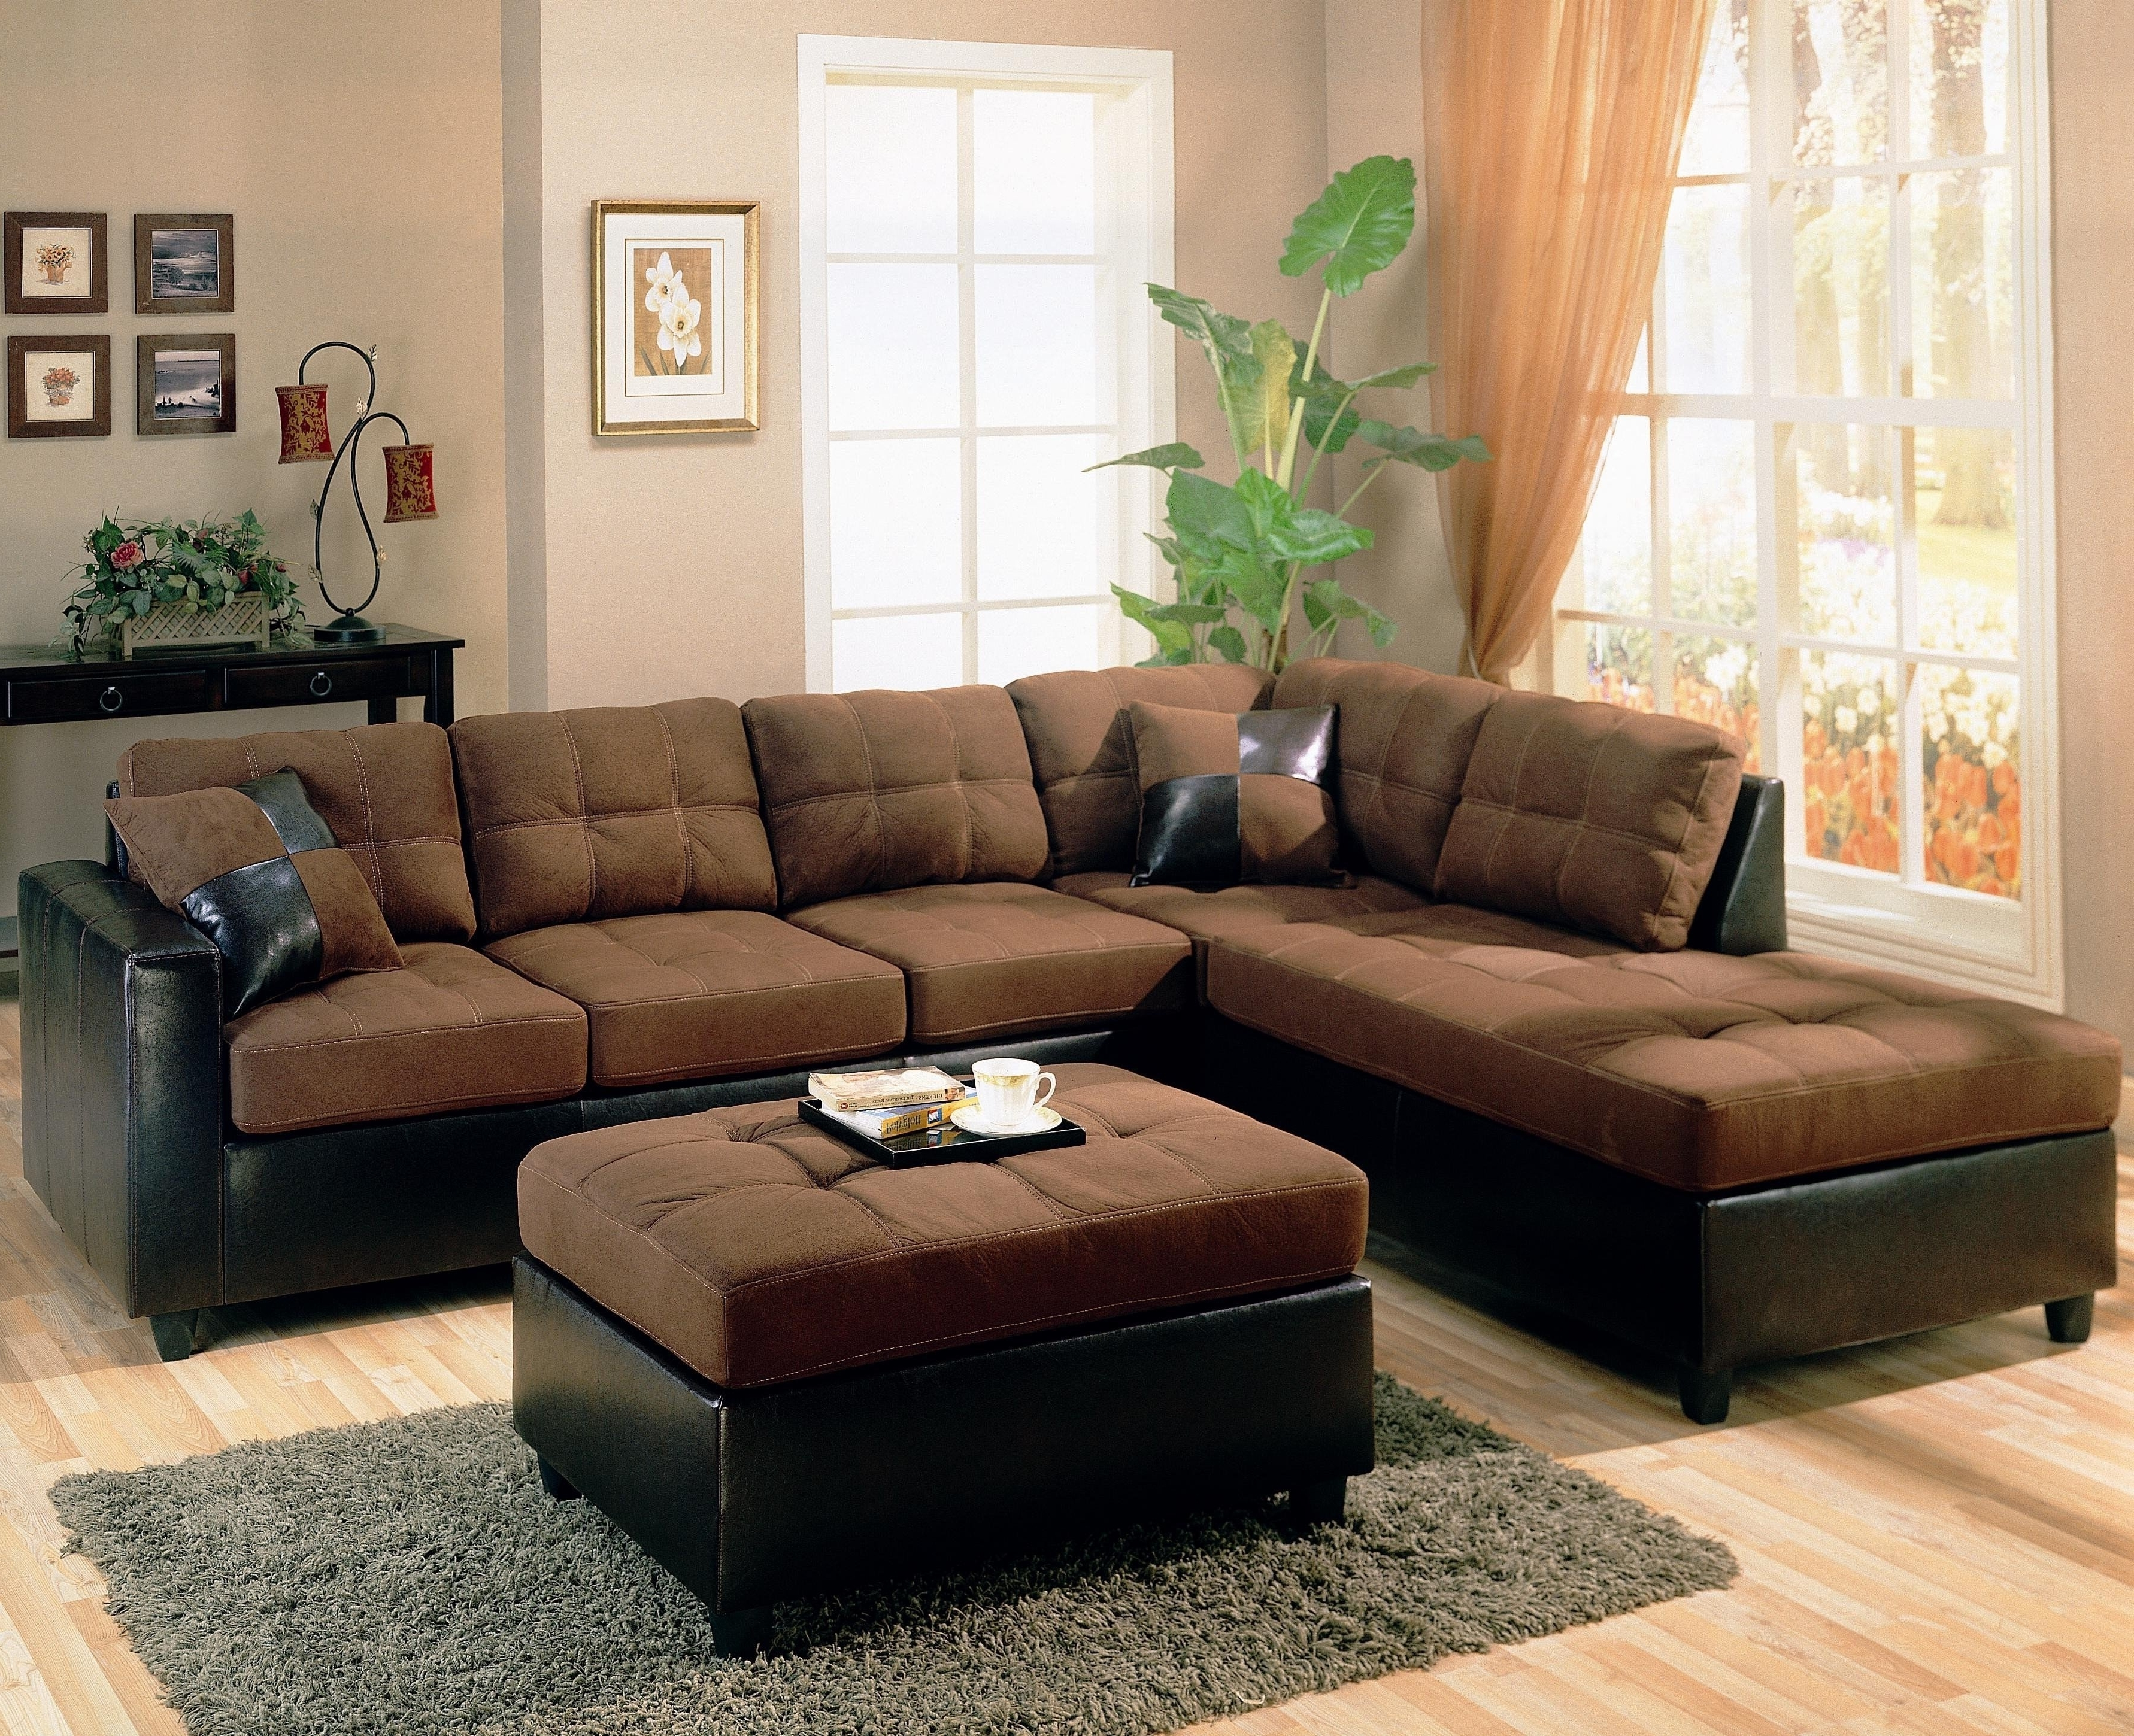 Small Sectional Sofa And Other Styles — The Kienandsweet Furnitures With Well Known Sectional Sofas At Chicago (View 12 of 15)